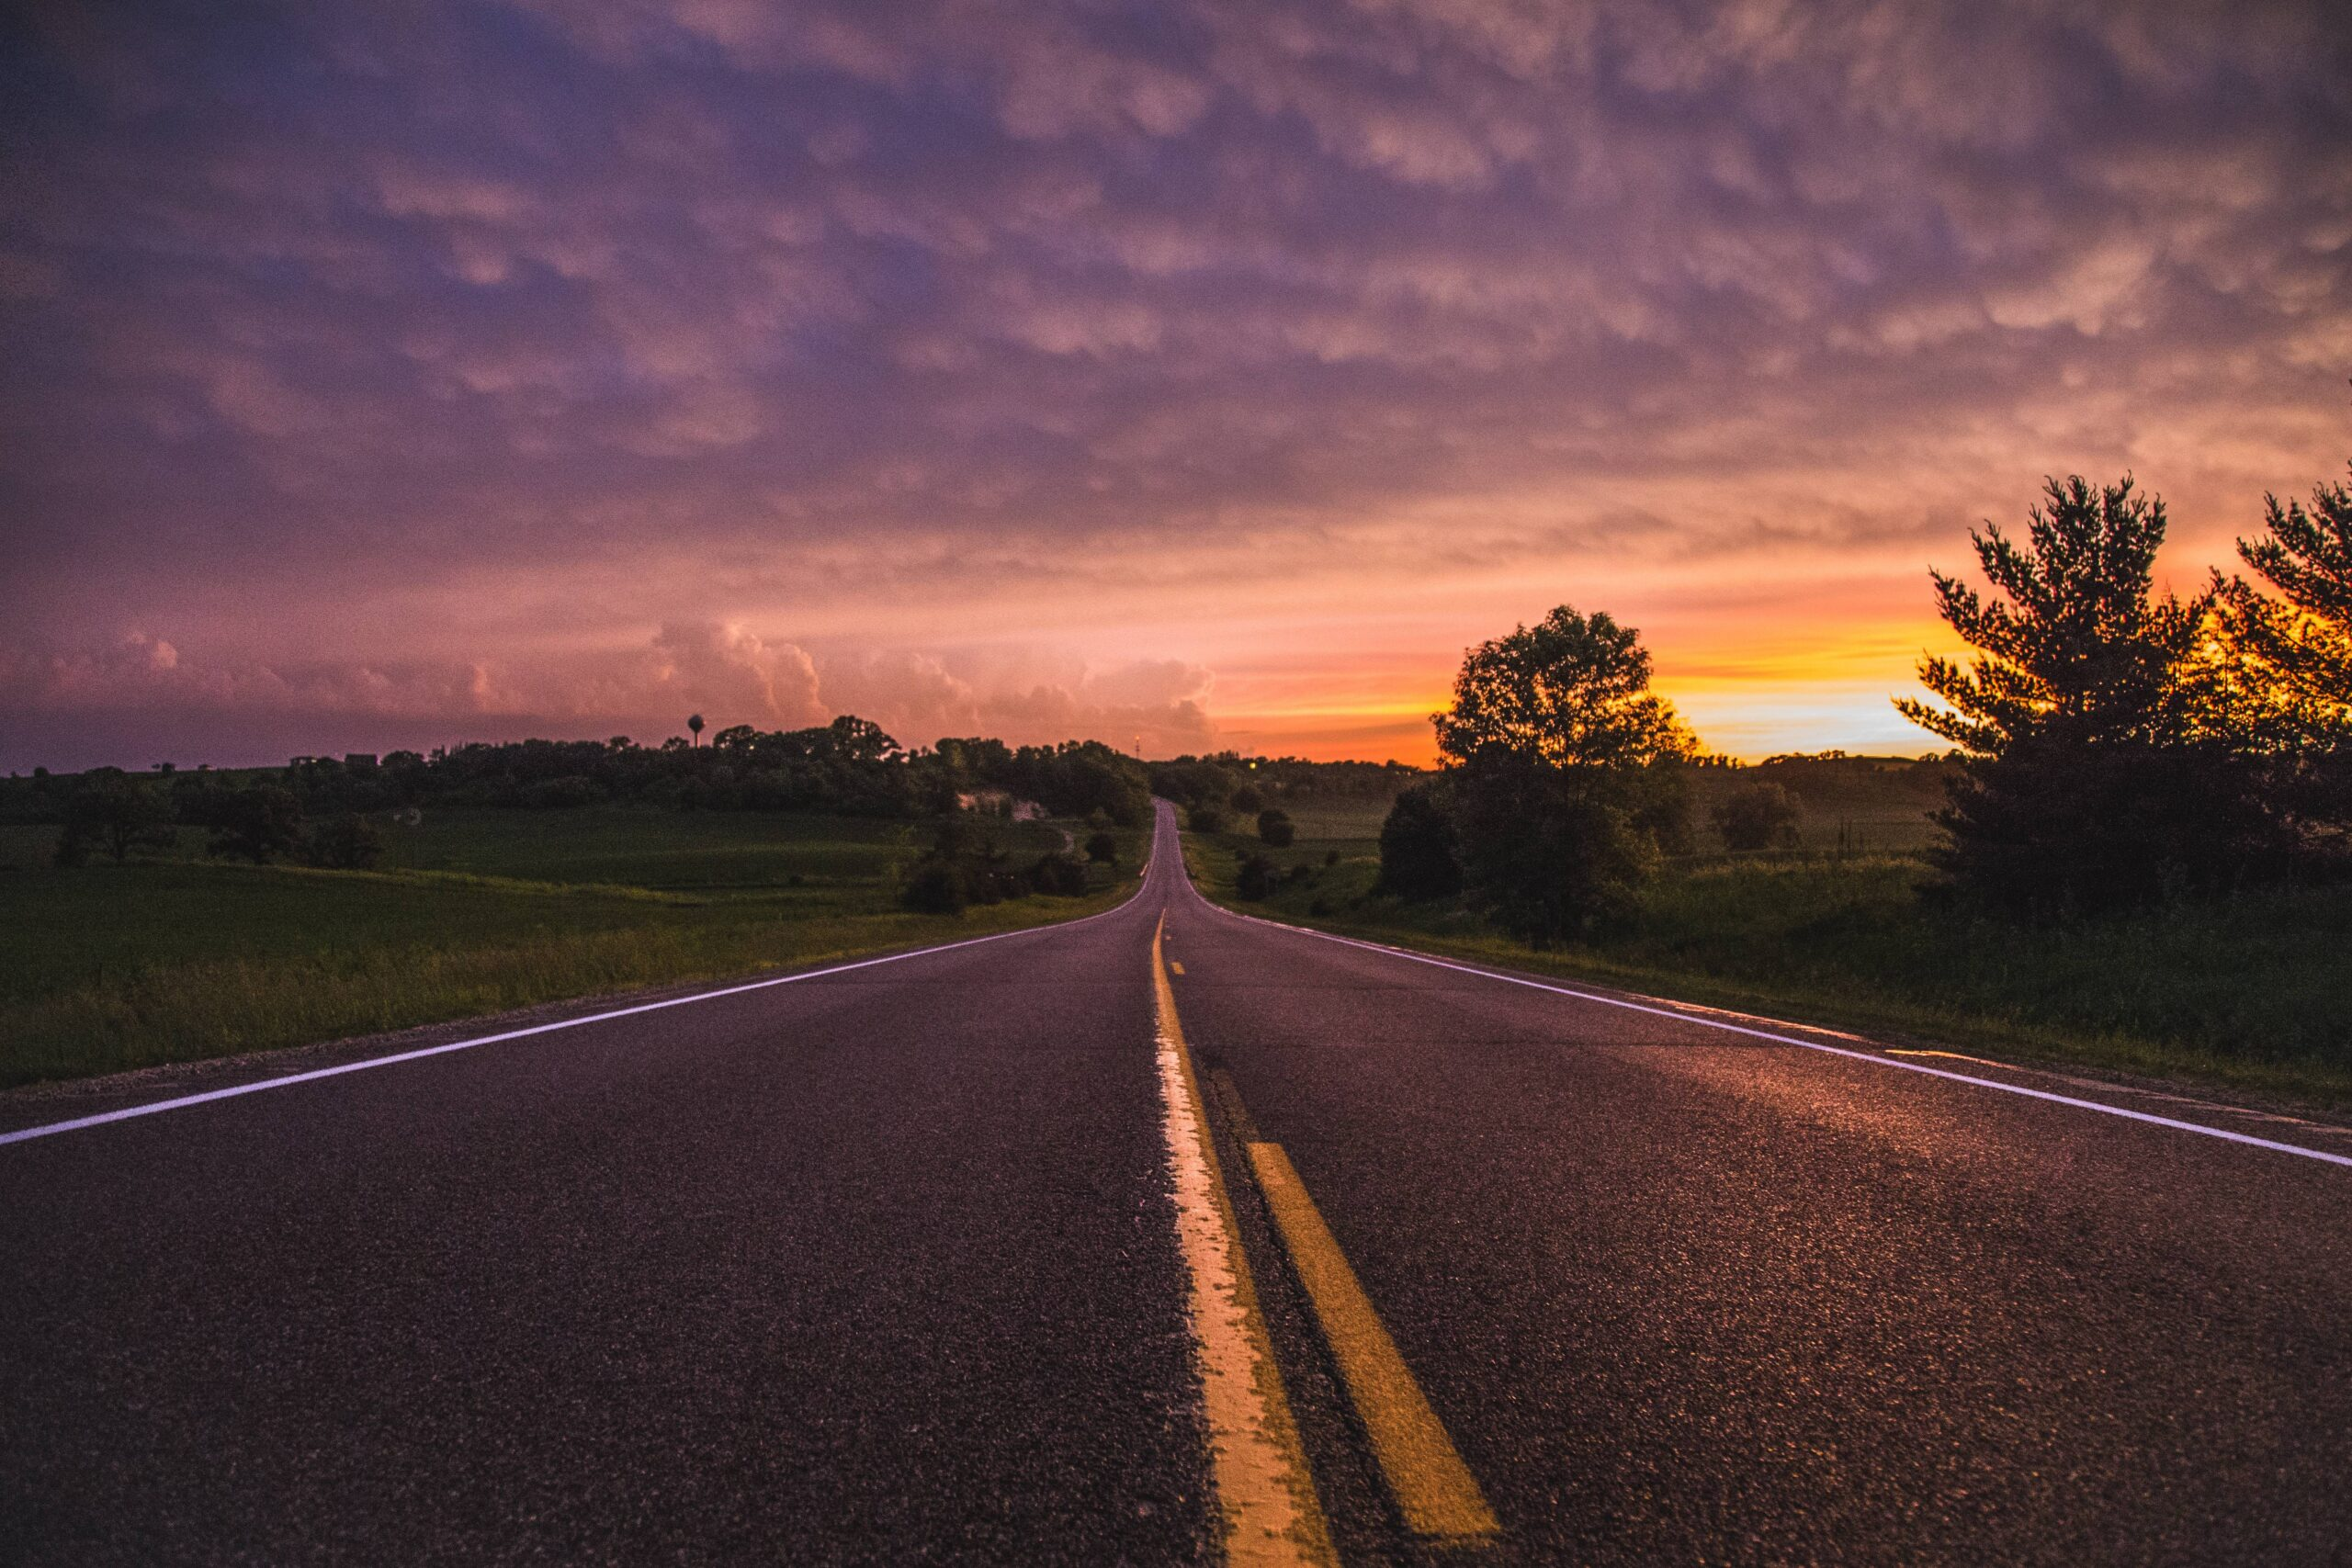 An image of the open road